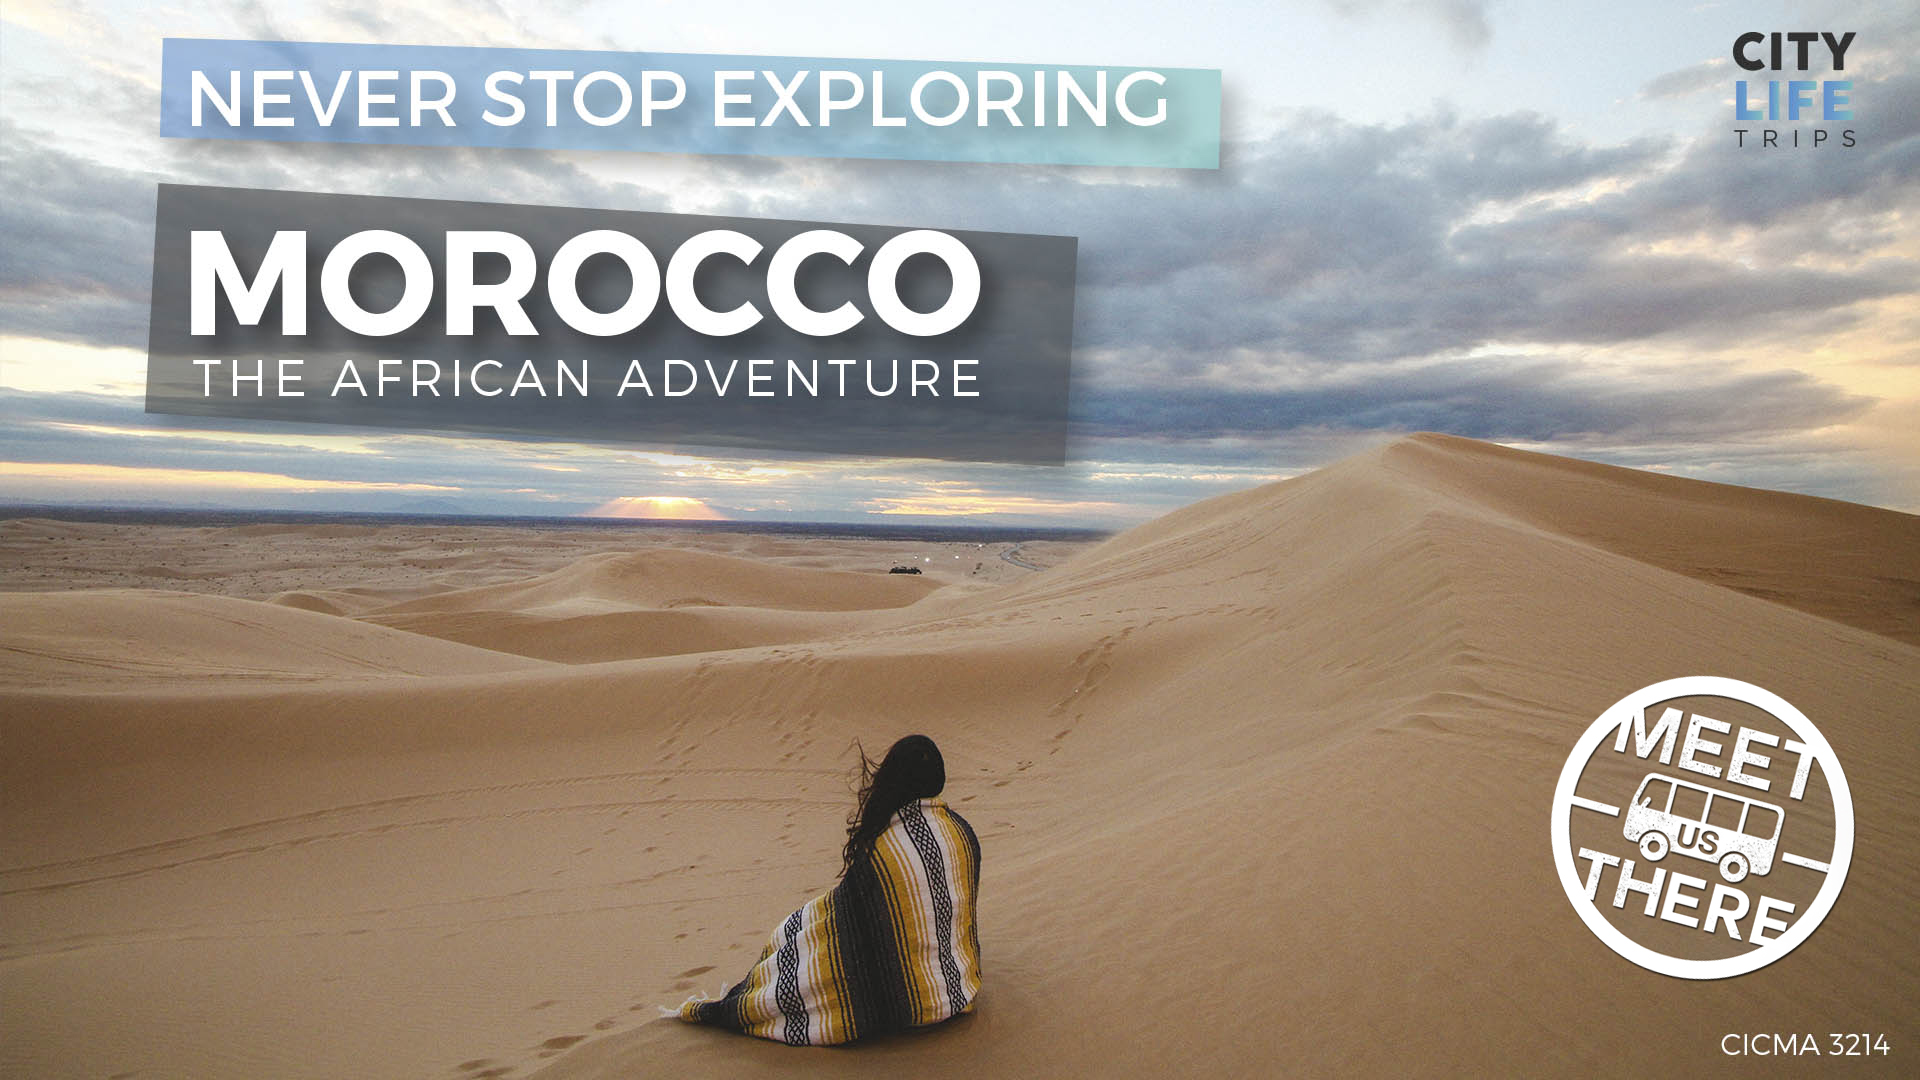 Morocco #1 – The African Adventure (Meet us There)